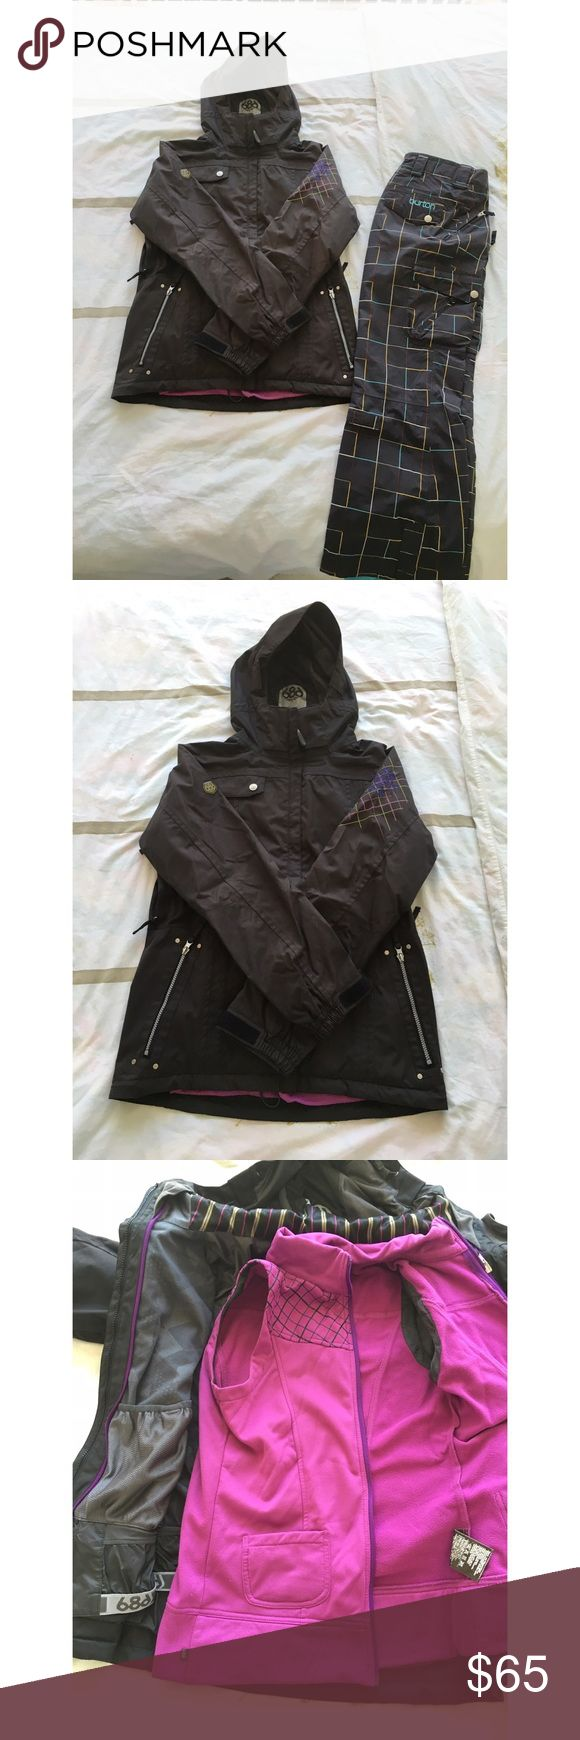 686 snowboard jacket Women's 686 snowboard jacket! Removable inner vest. Size M. Worn for 2 seasons! Great condition! 686 Jackets & Coats Puffers